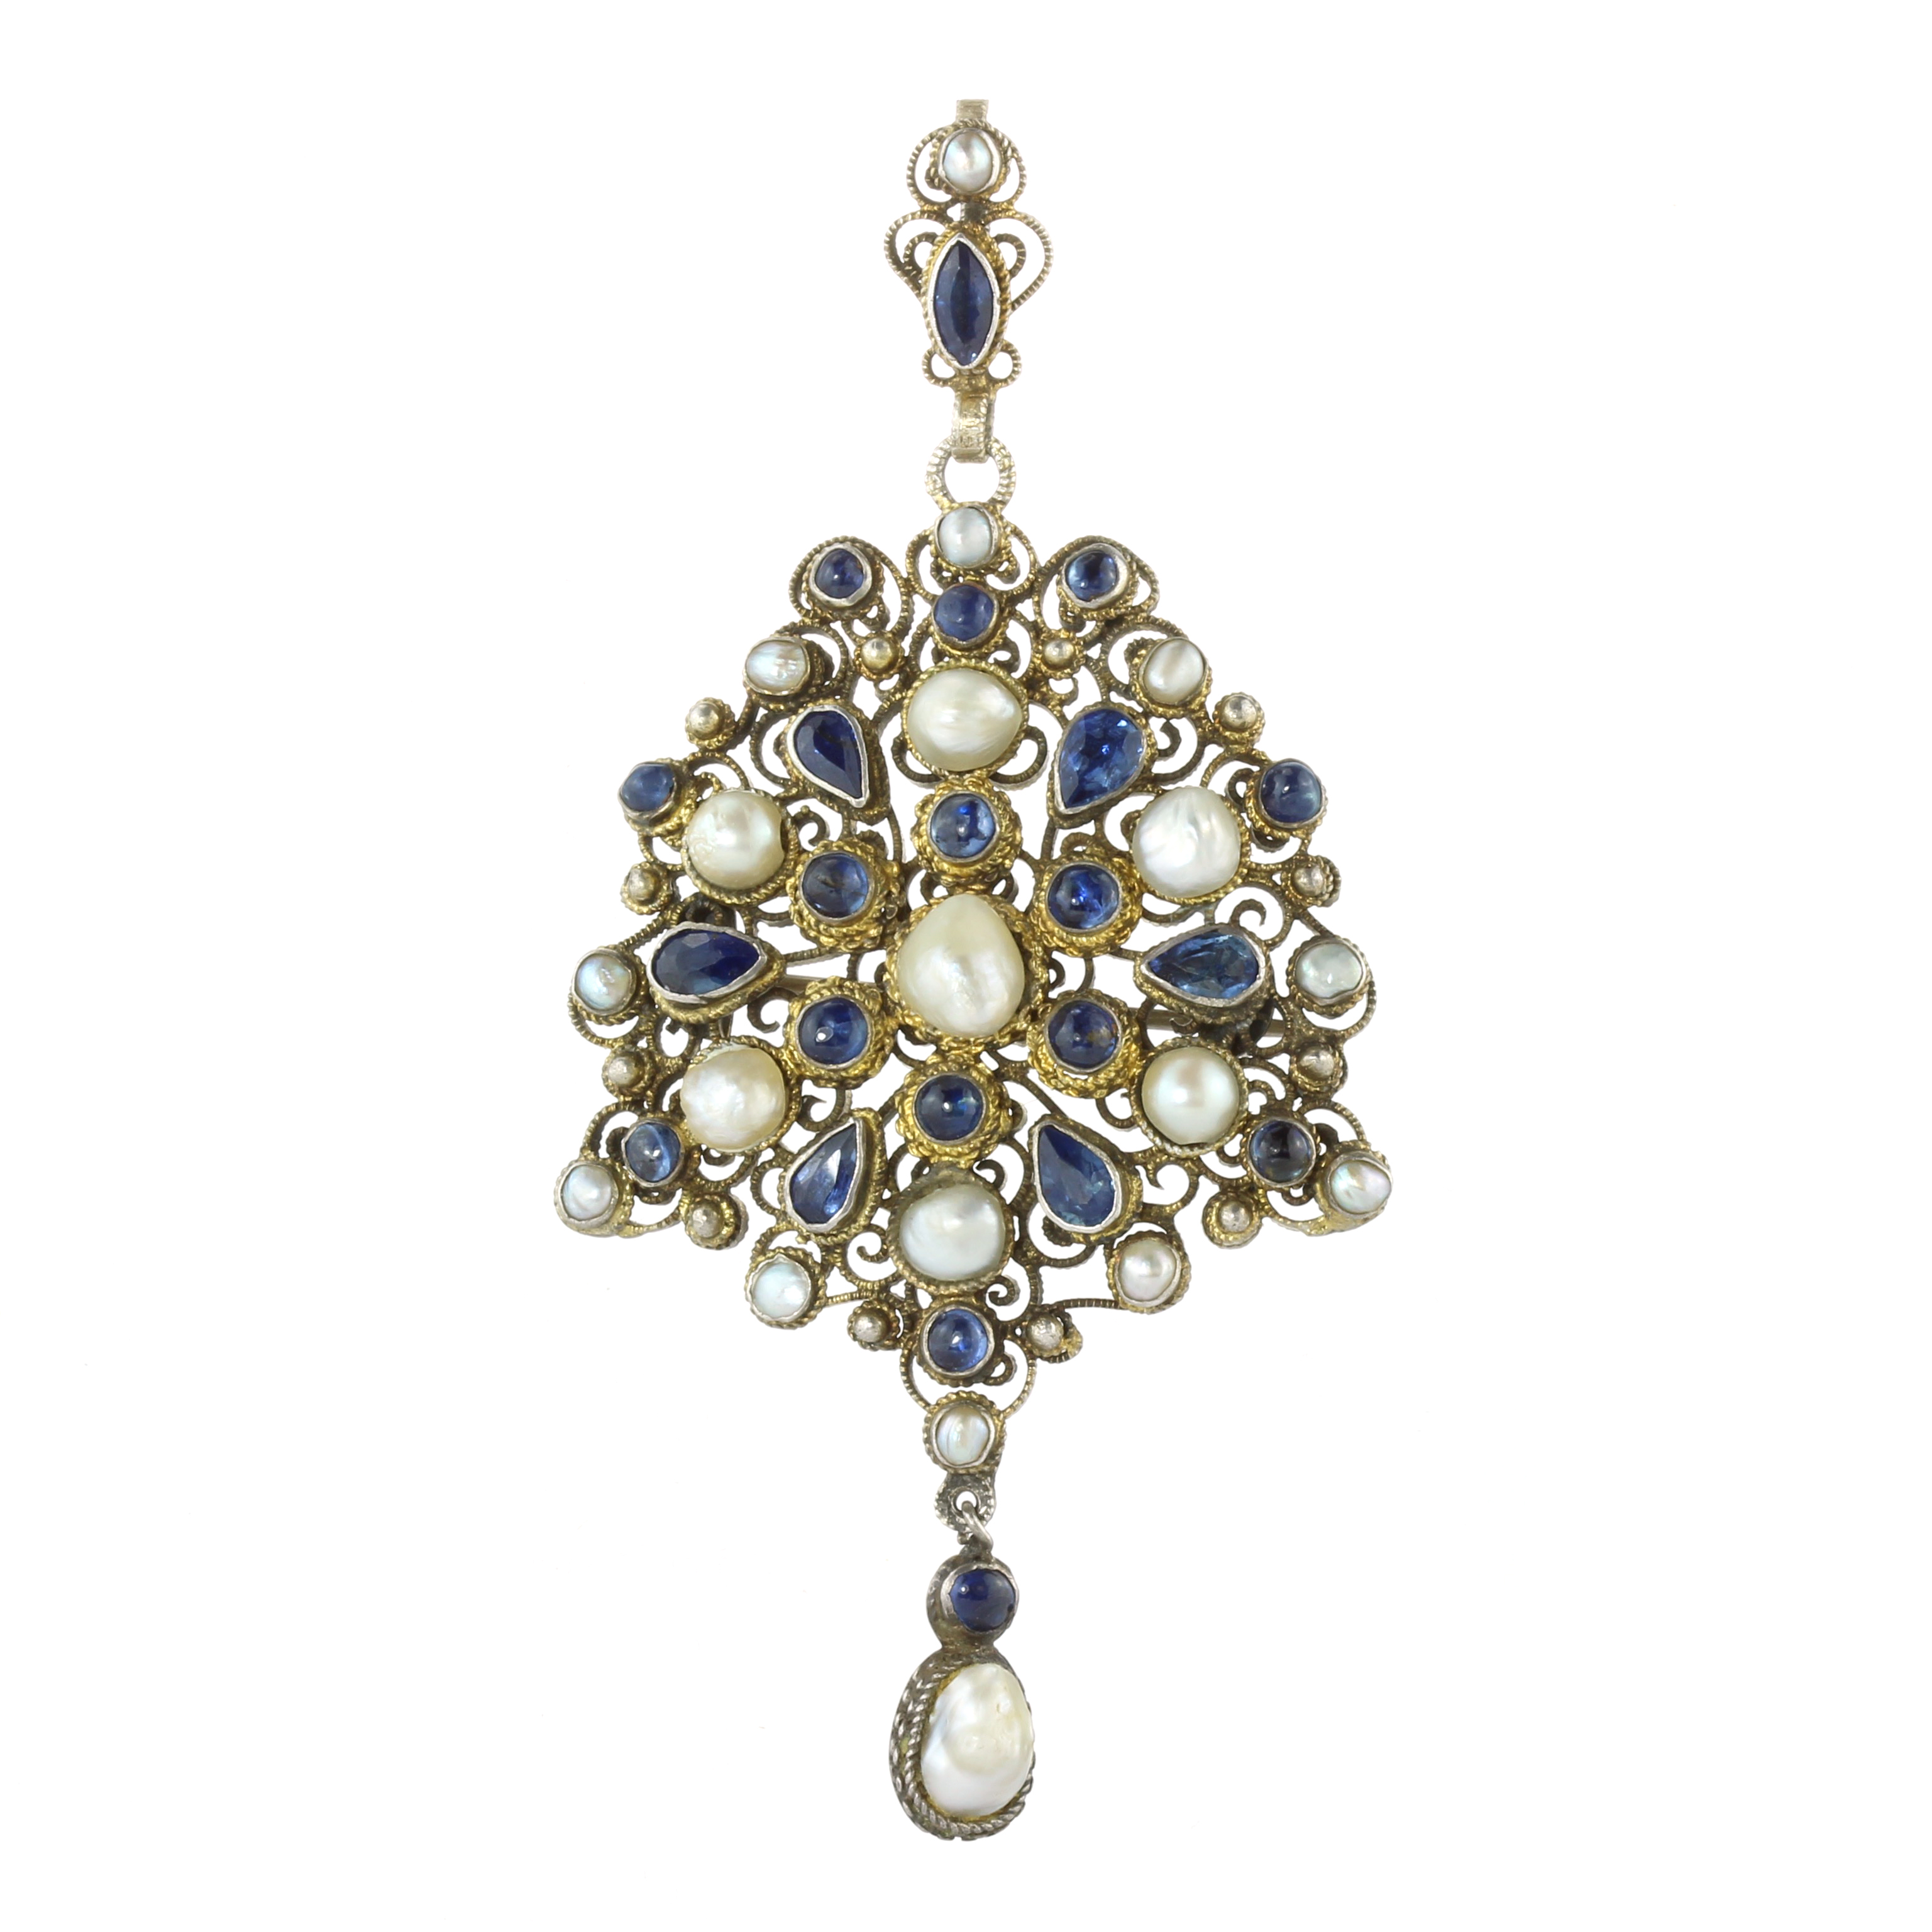 Los 10 - AN ANTIQUE PEARL AND SAPPHIRE PENDANT / BROOCH in silver, the main body set with a central pearl